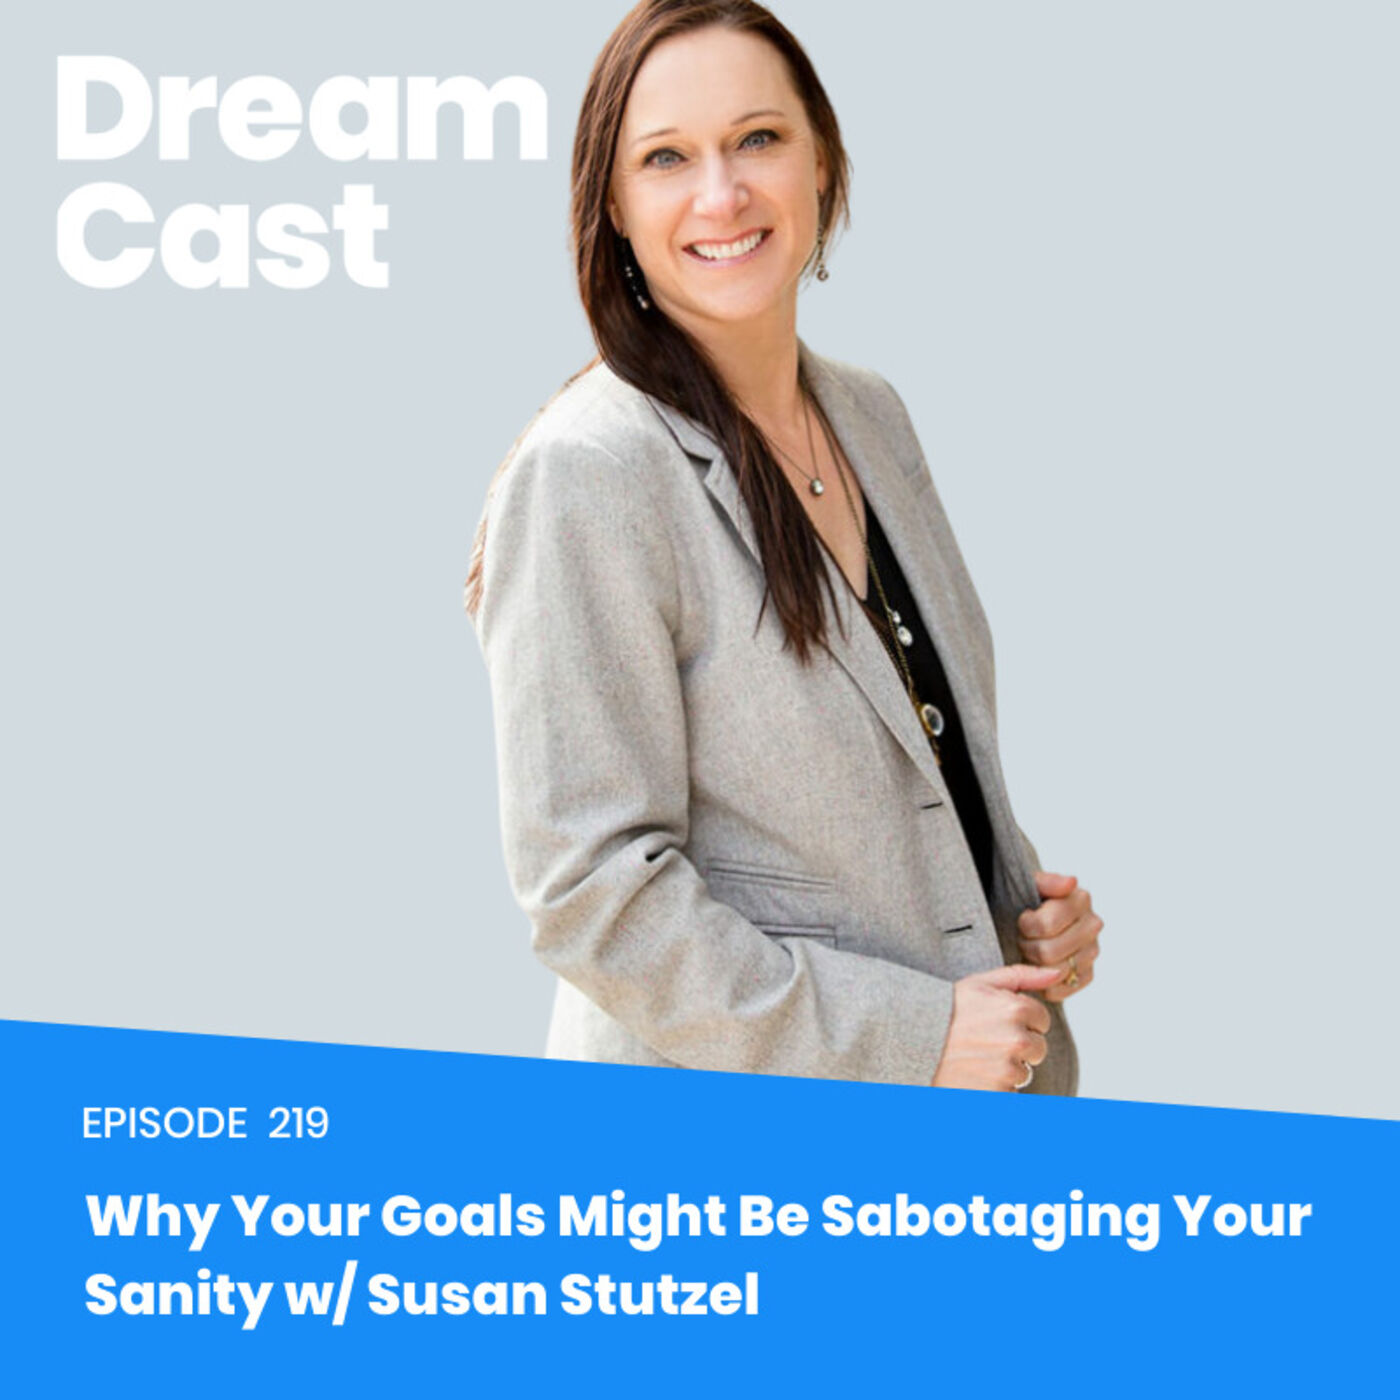 Ep 219: Why Your Goals Might Be Sabotaging Your Sanity w/ Susan Stutzel